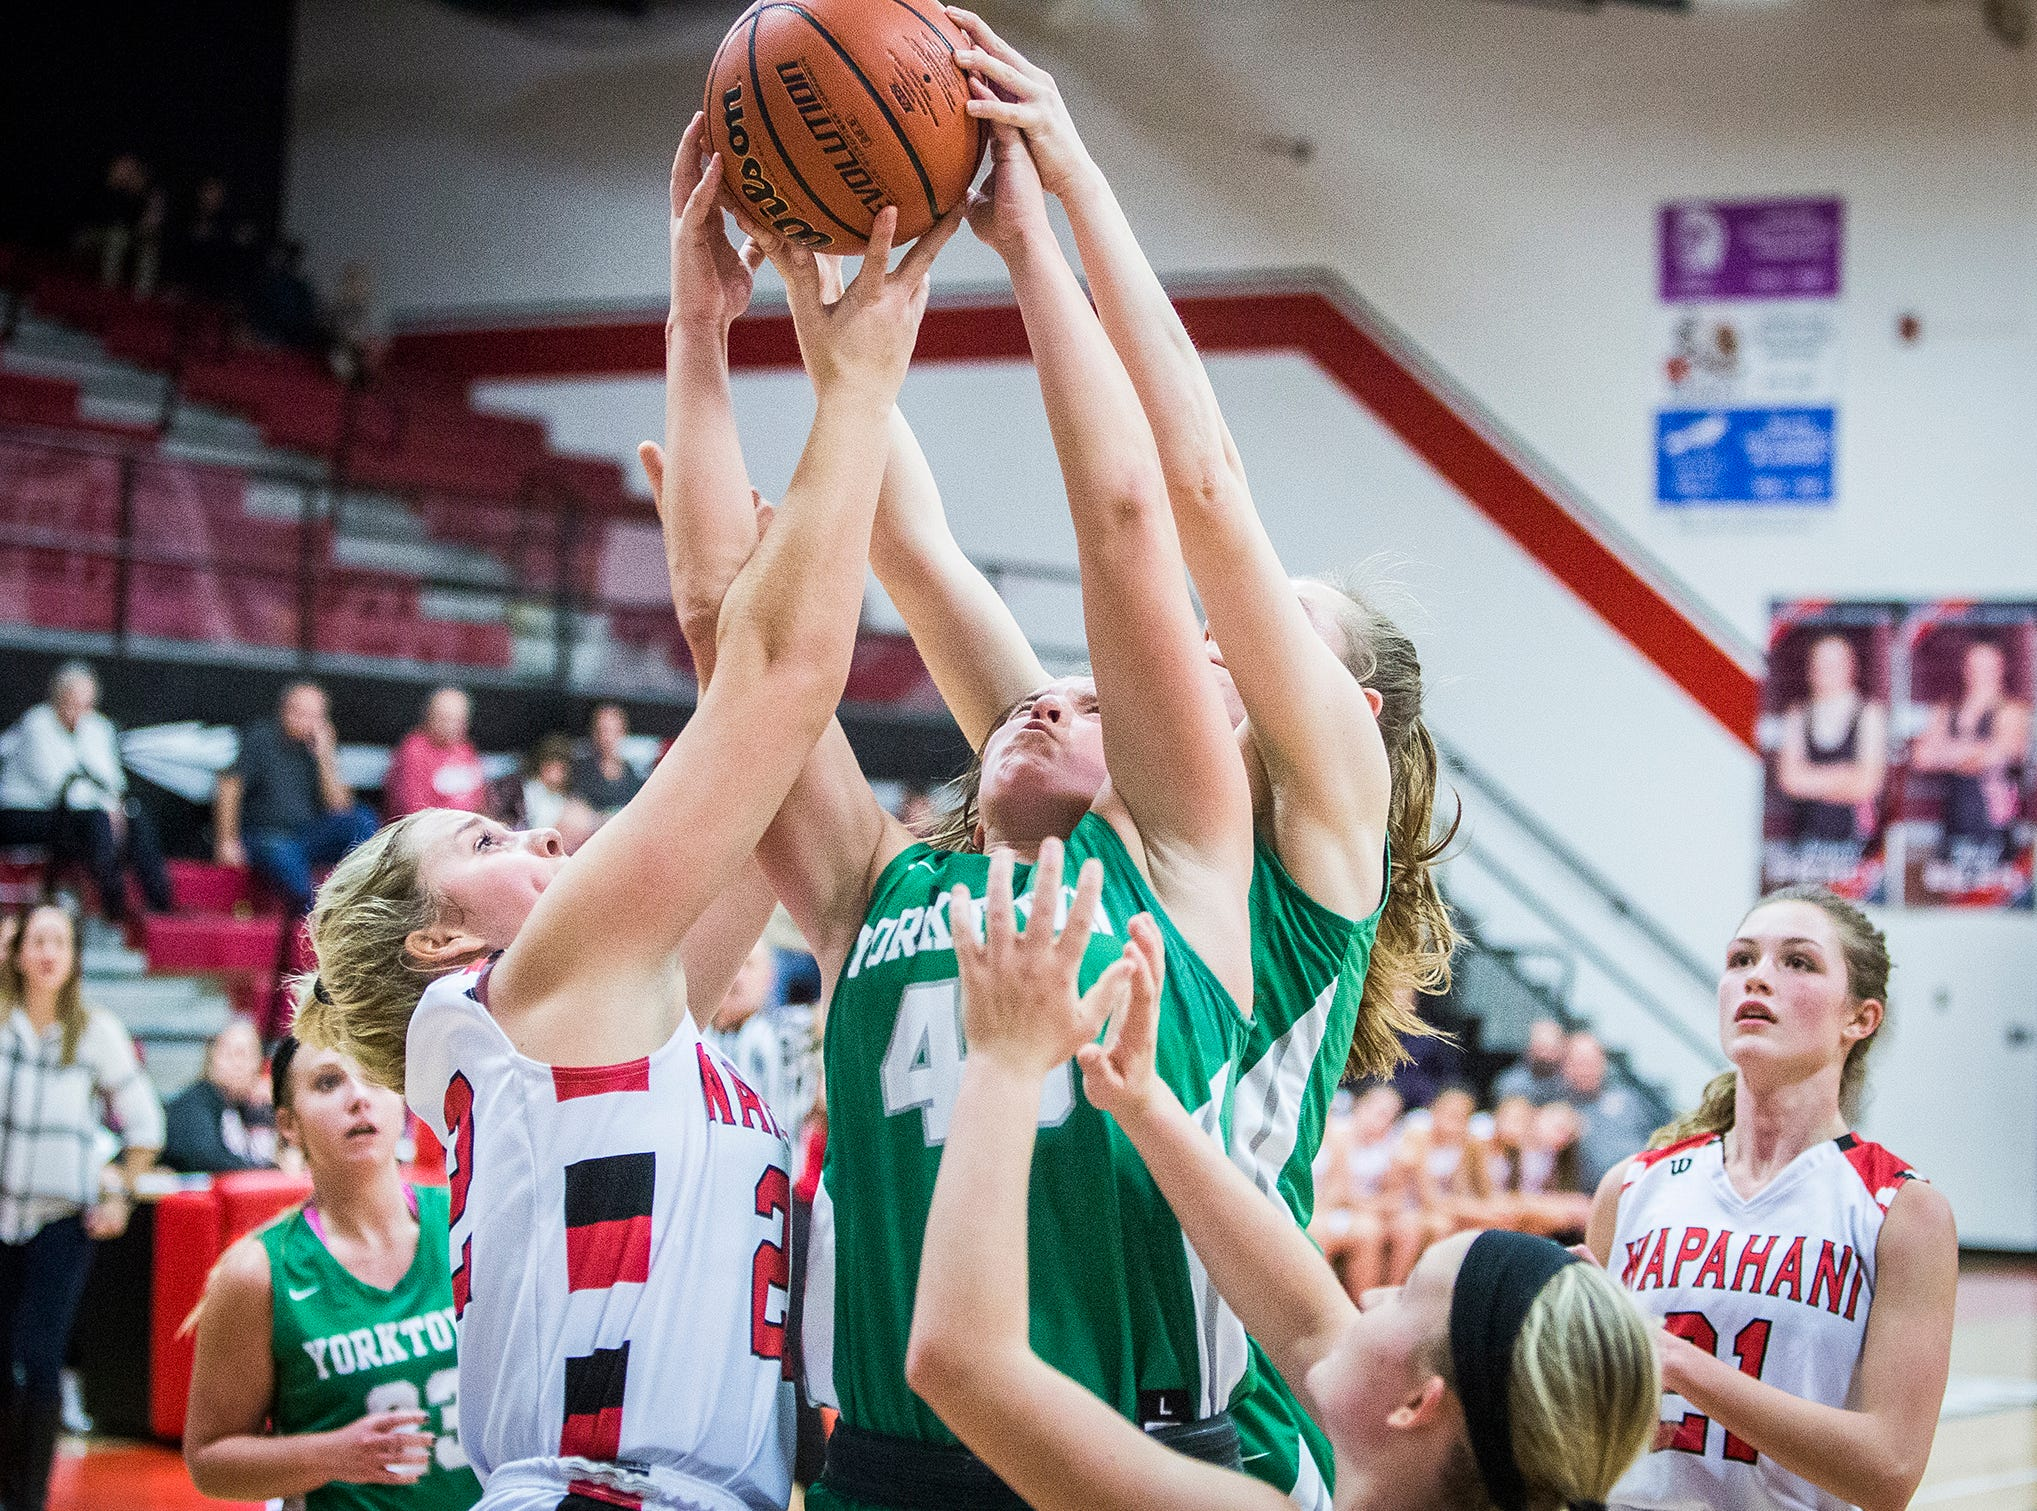 Yorktown's Ellie Miller grabs a rebound during their game against Wapahani at Wapahani High School Tuesday, Dec. 4, 2018.